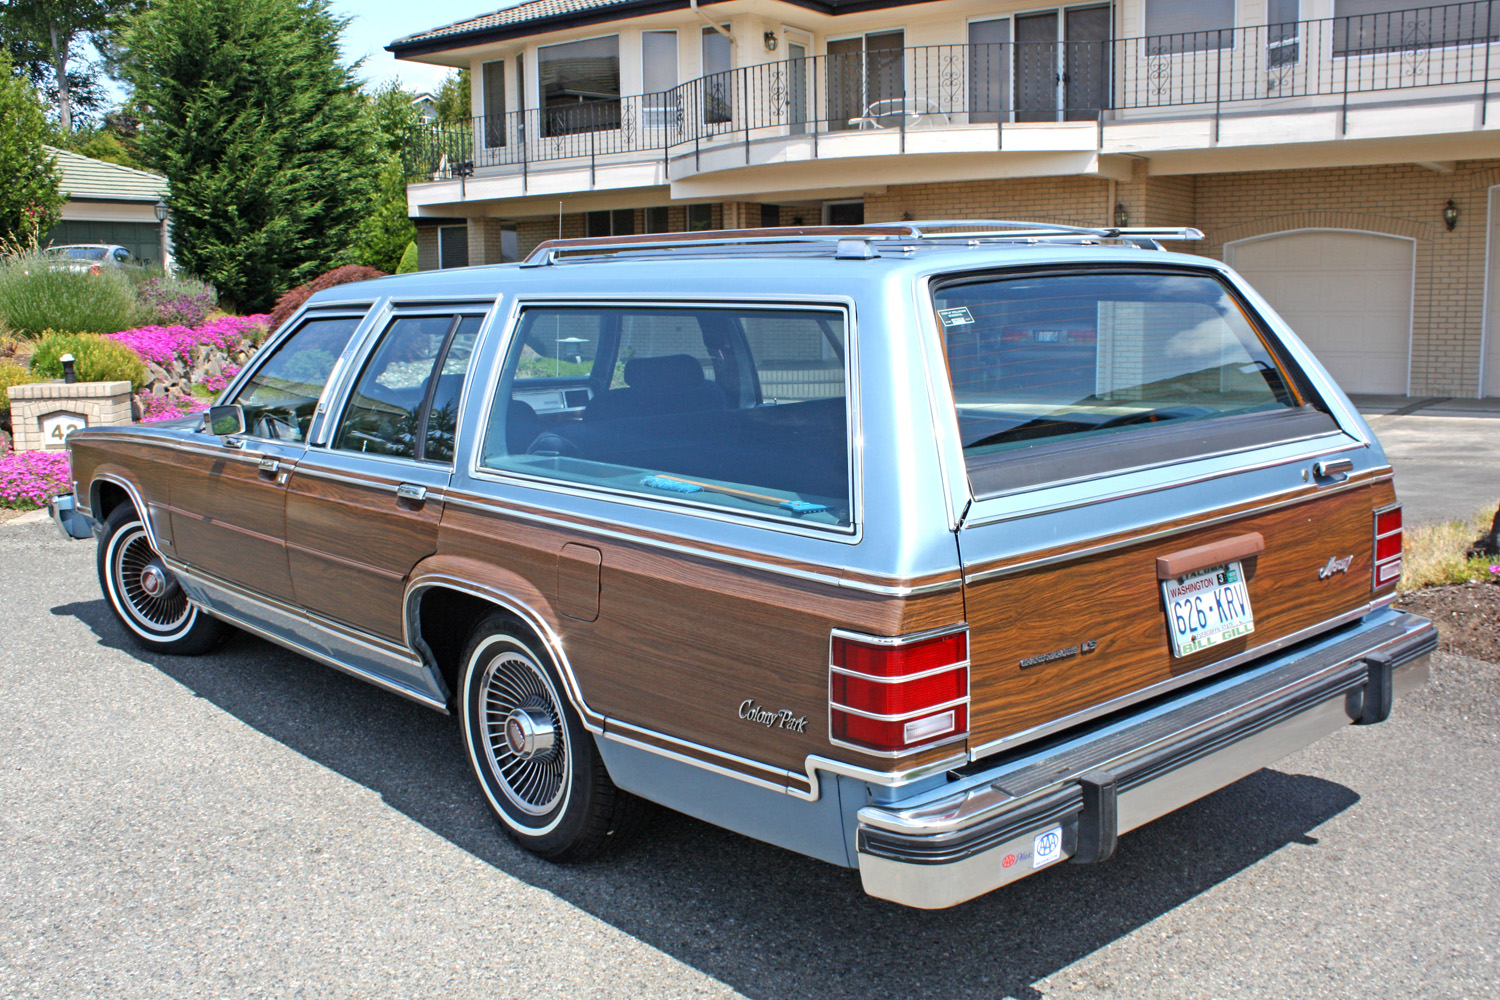 driven by dad the 1983 colony park wagon america 39 s car museum. Black Bedroom Furniture Sets. Home Design Ideas